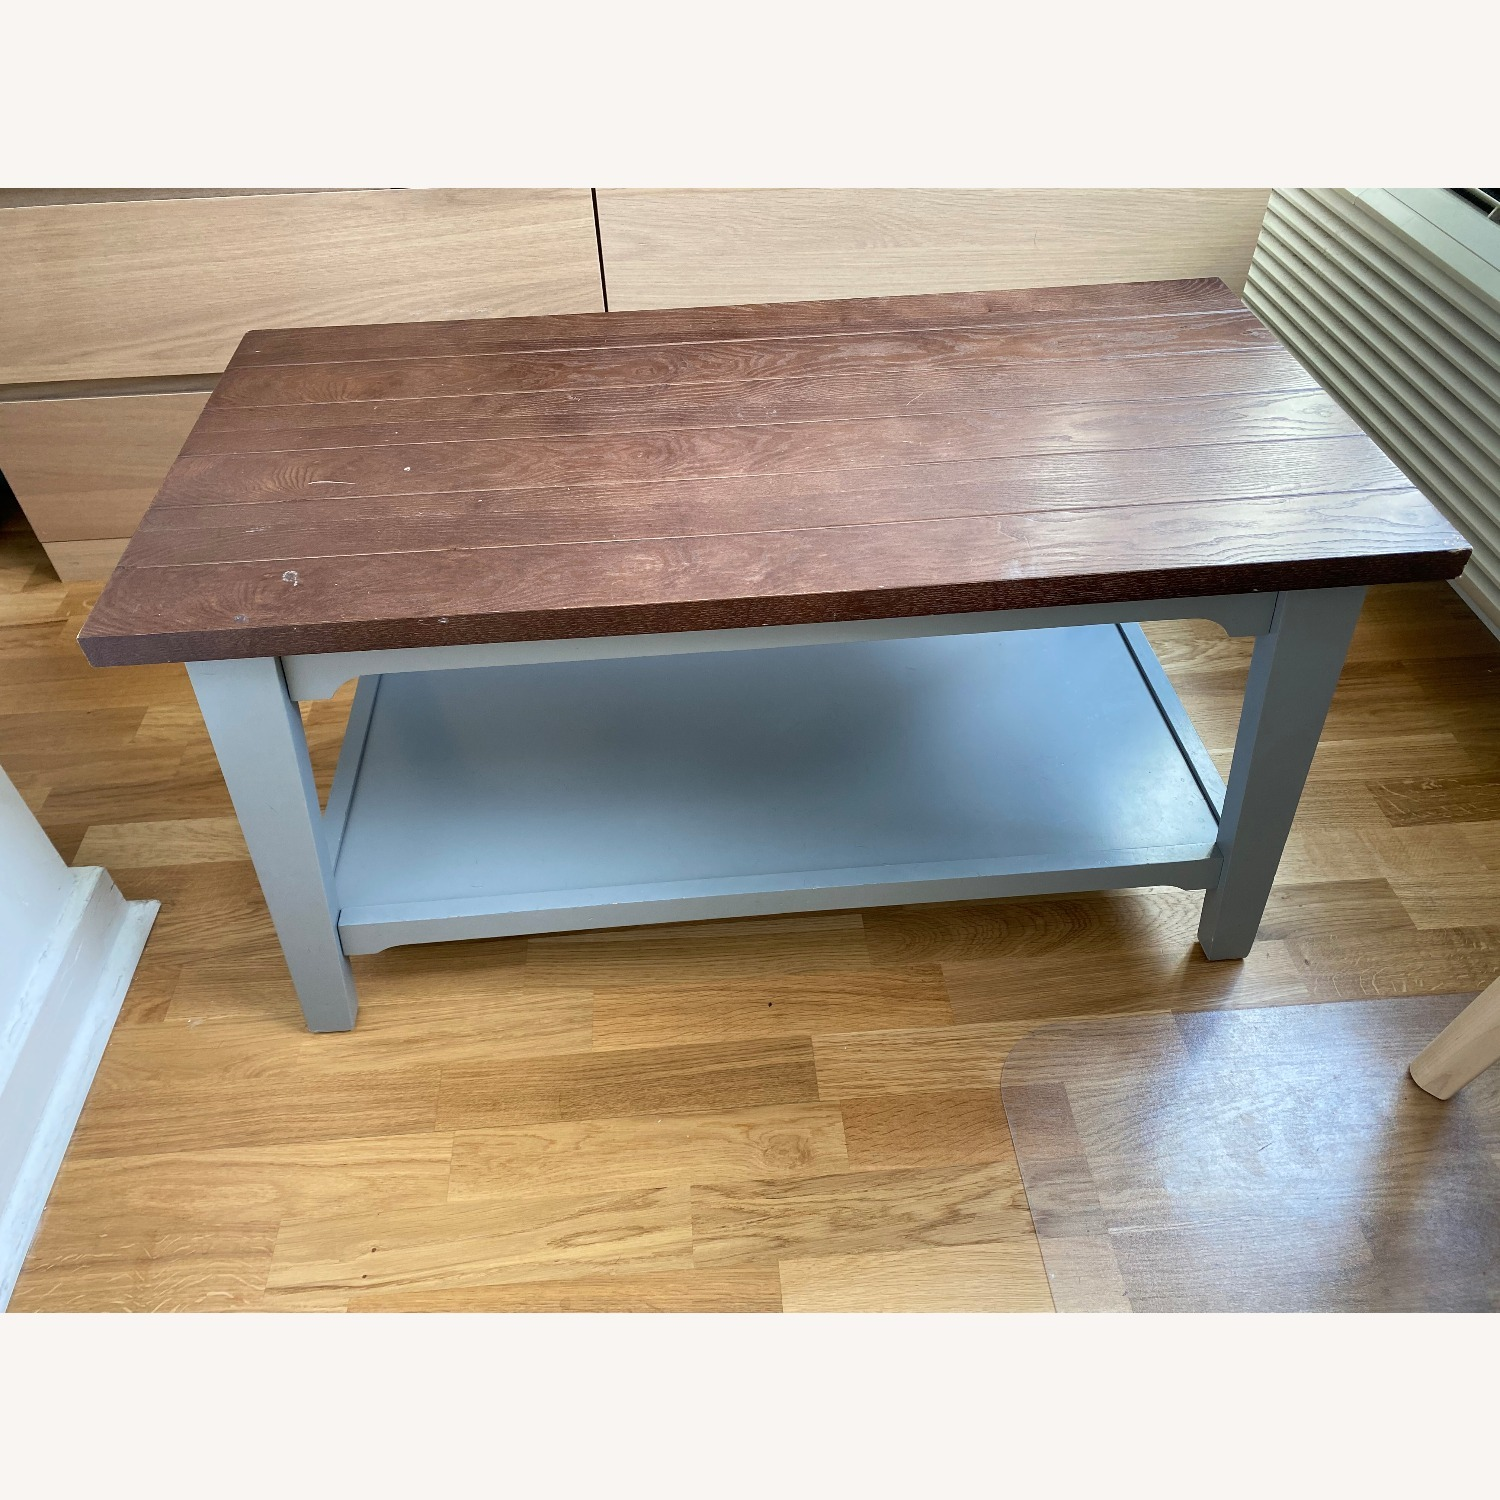 Chatham House Newport Coffee Table in Grey - image-1